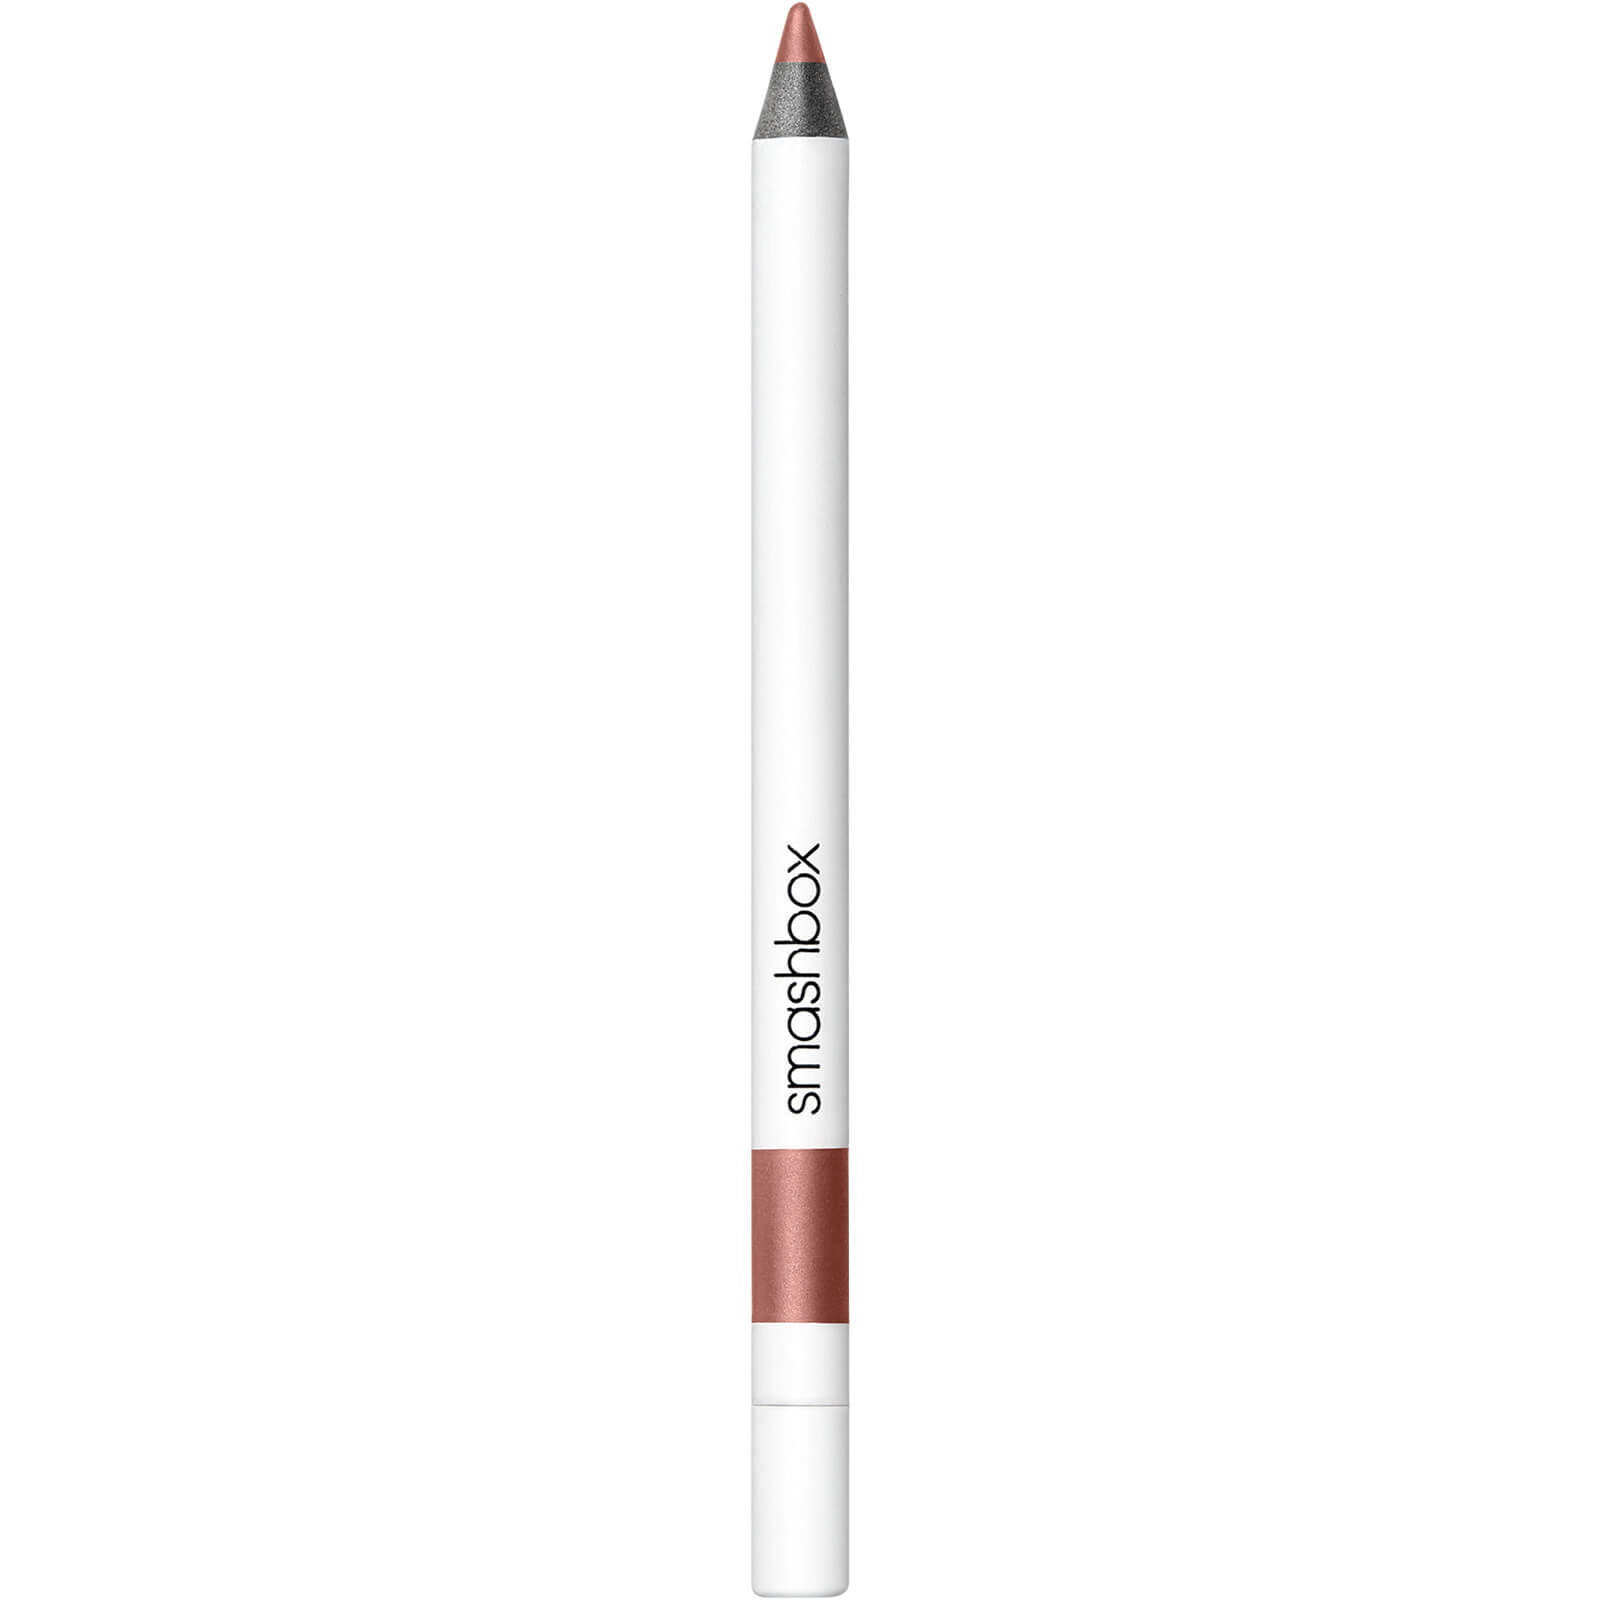 Smashbox Be Legendary Line and Prime Pencil 1.2g (Various Shades) - Natural Rose